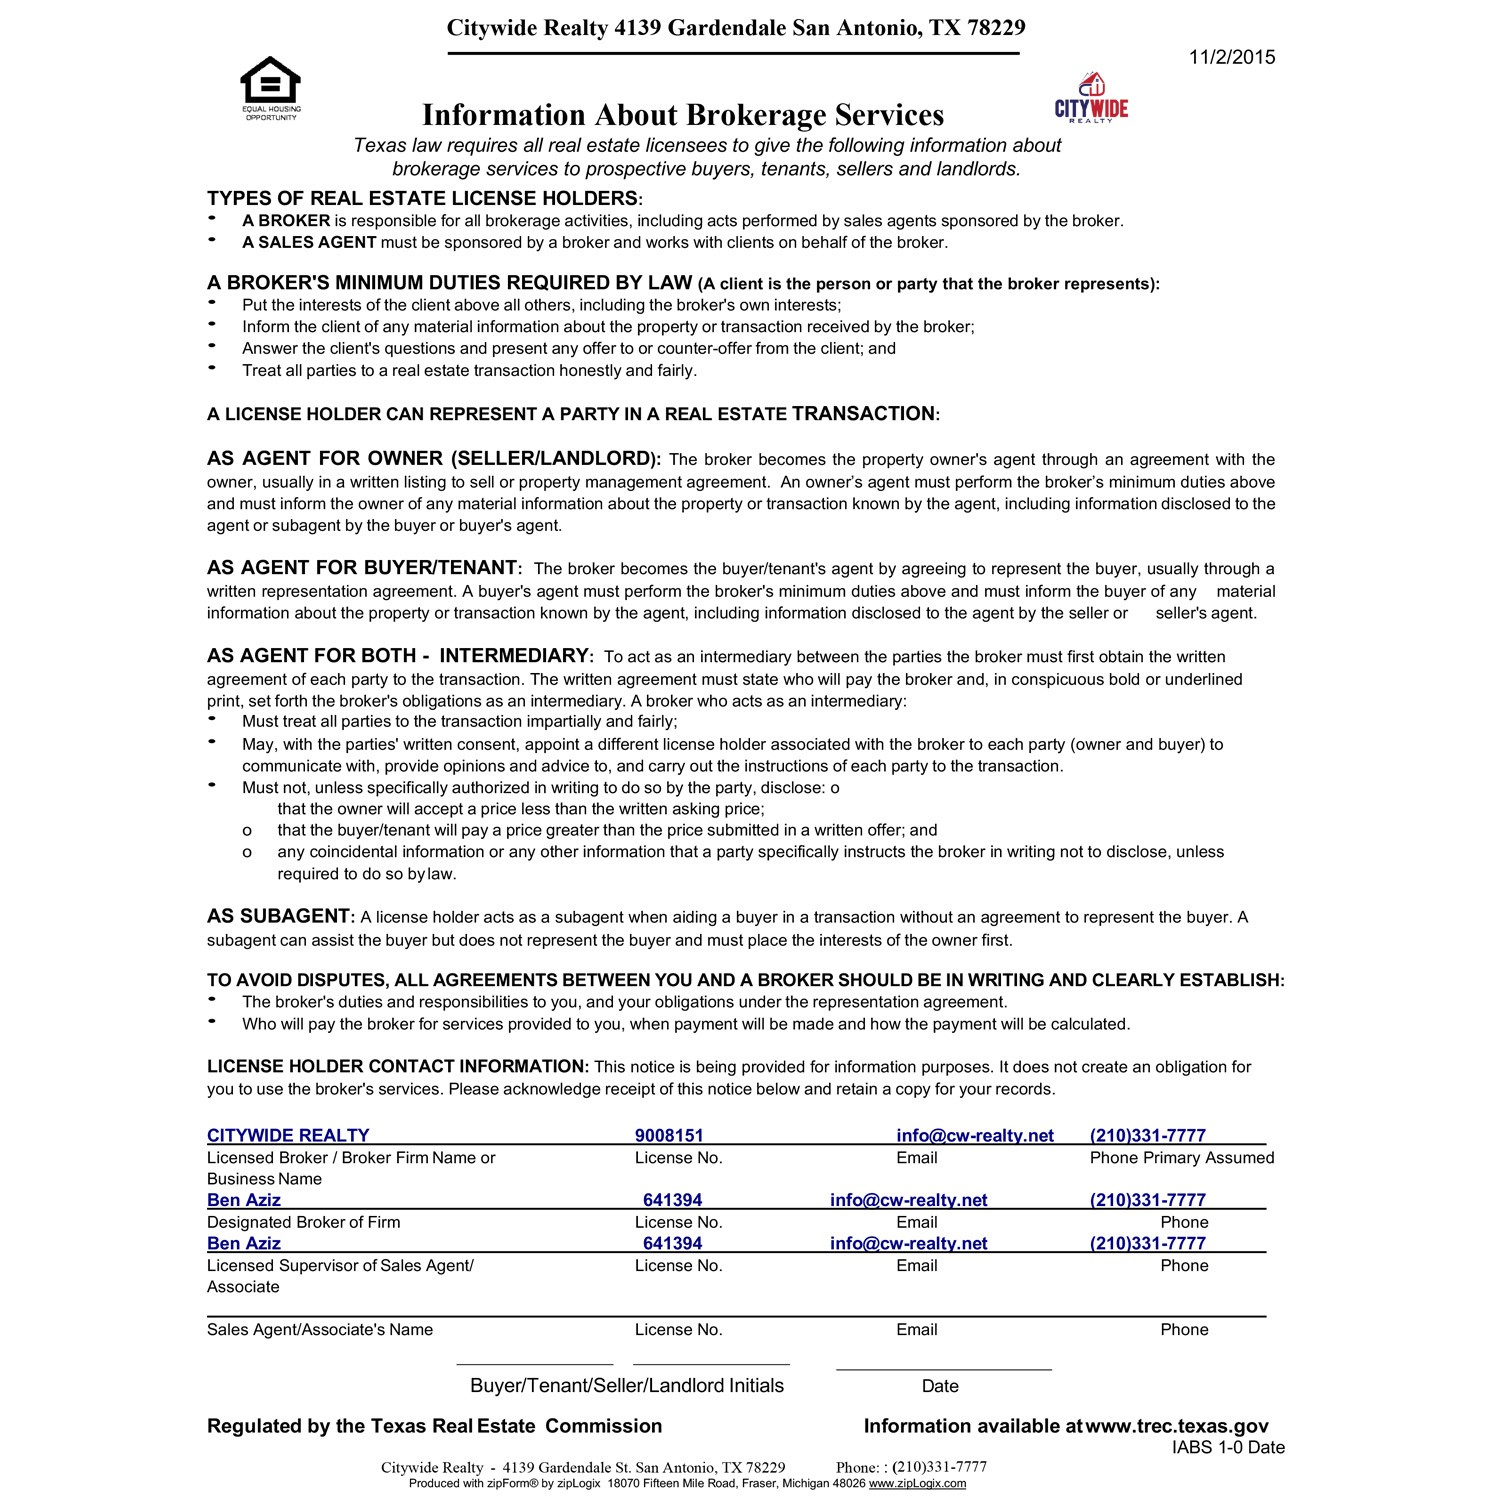 Information About Brokerage Services For Citywide